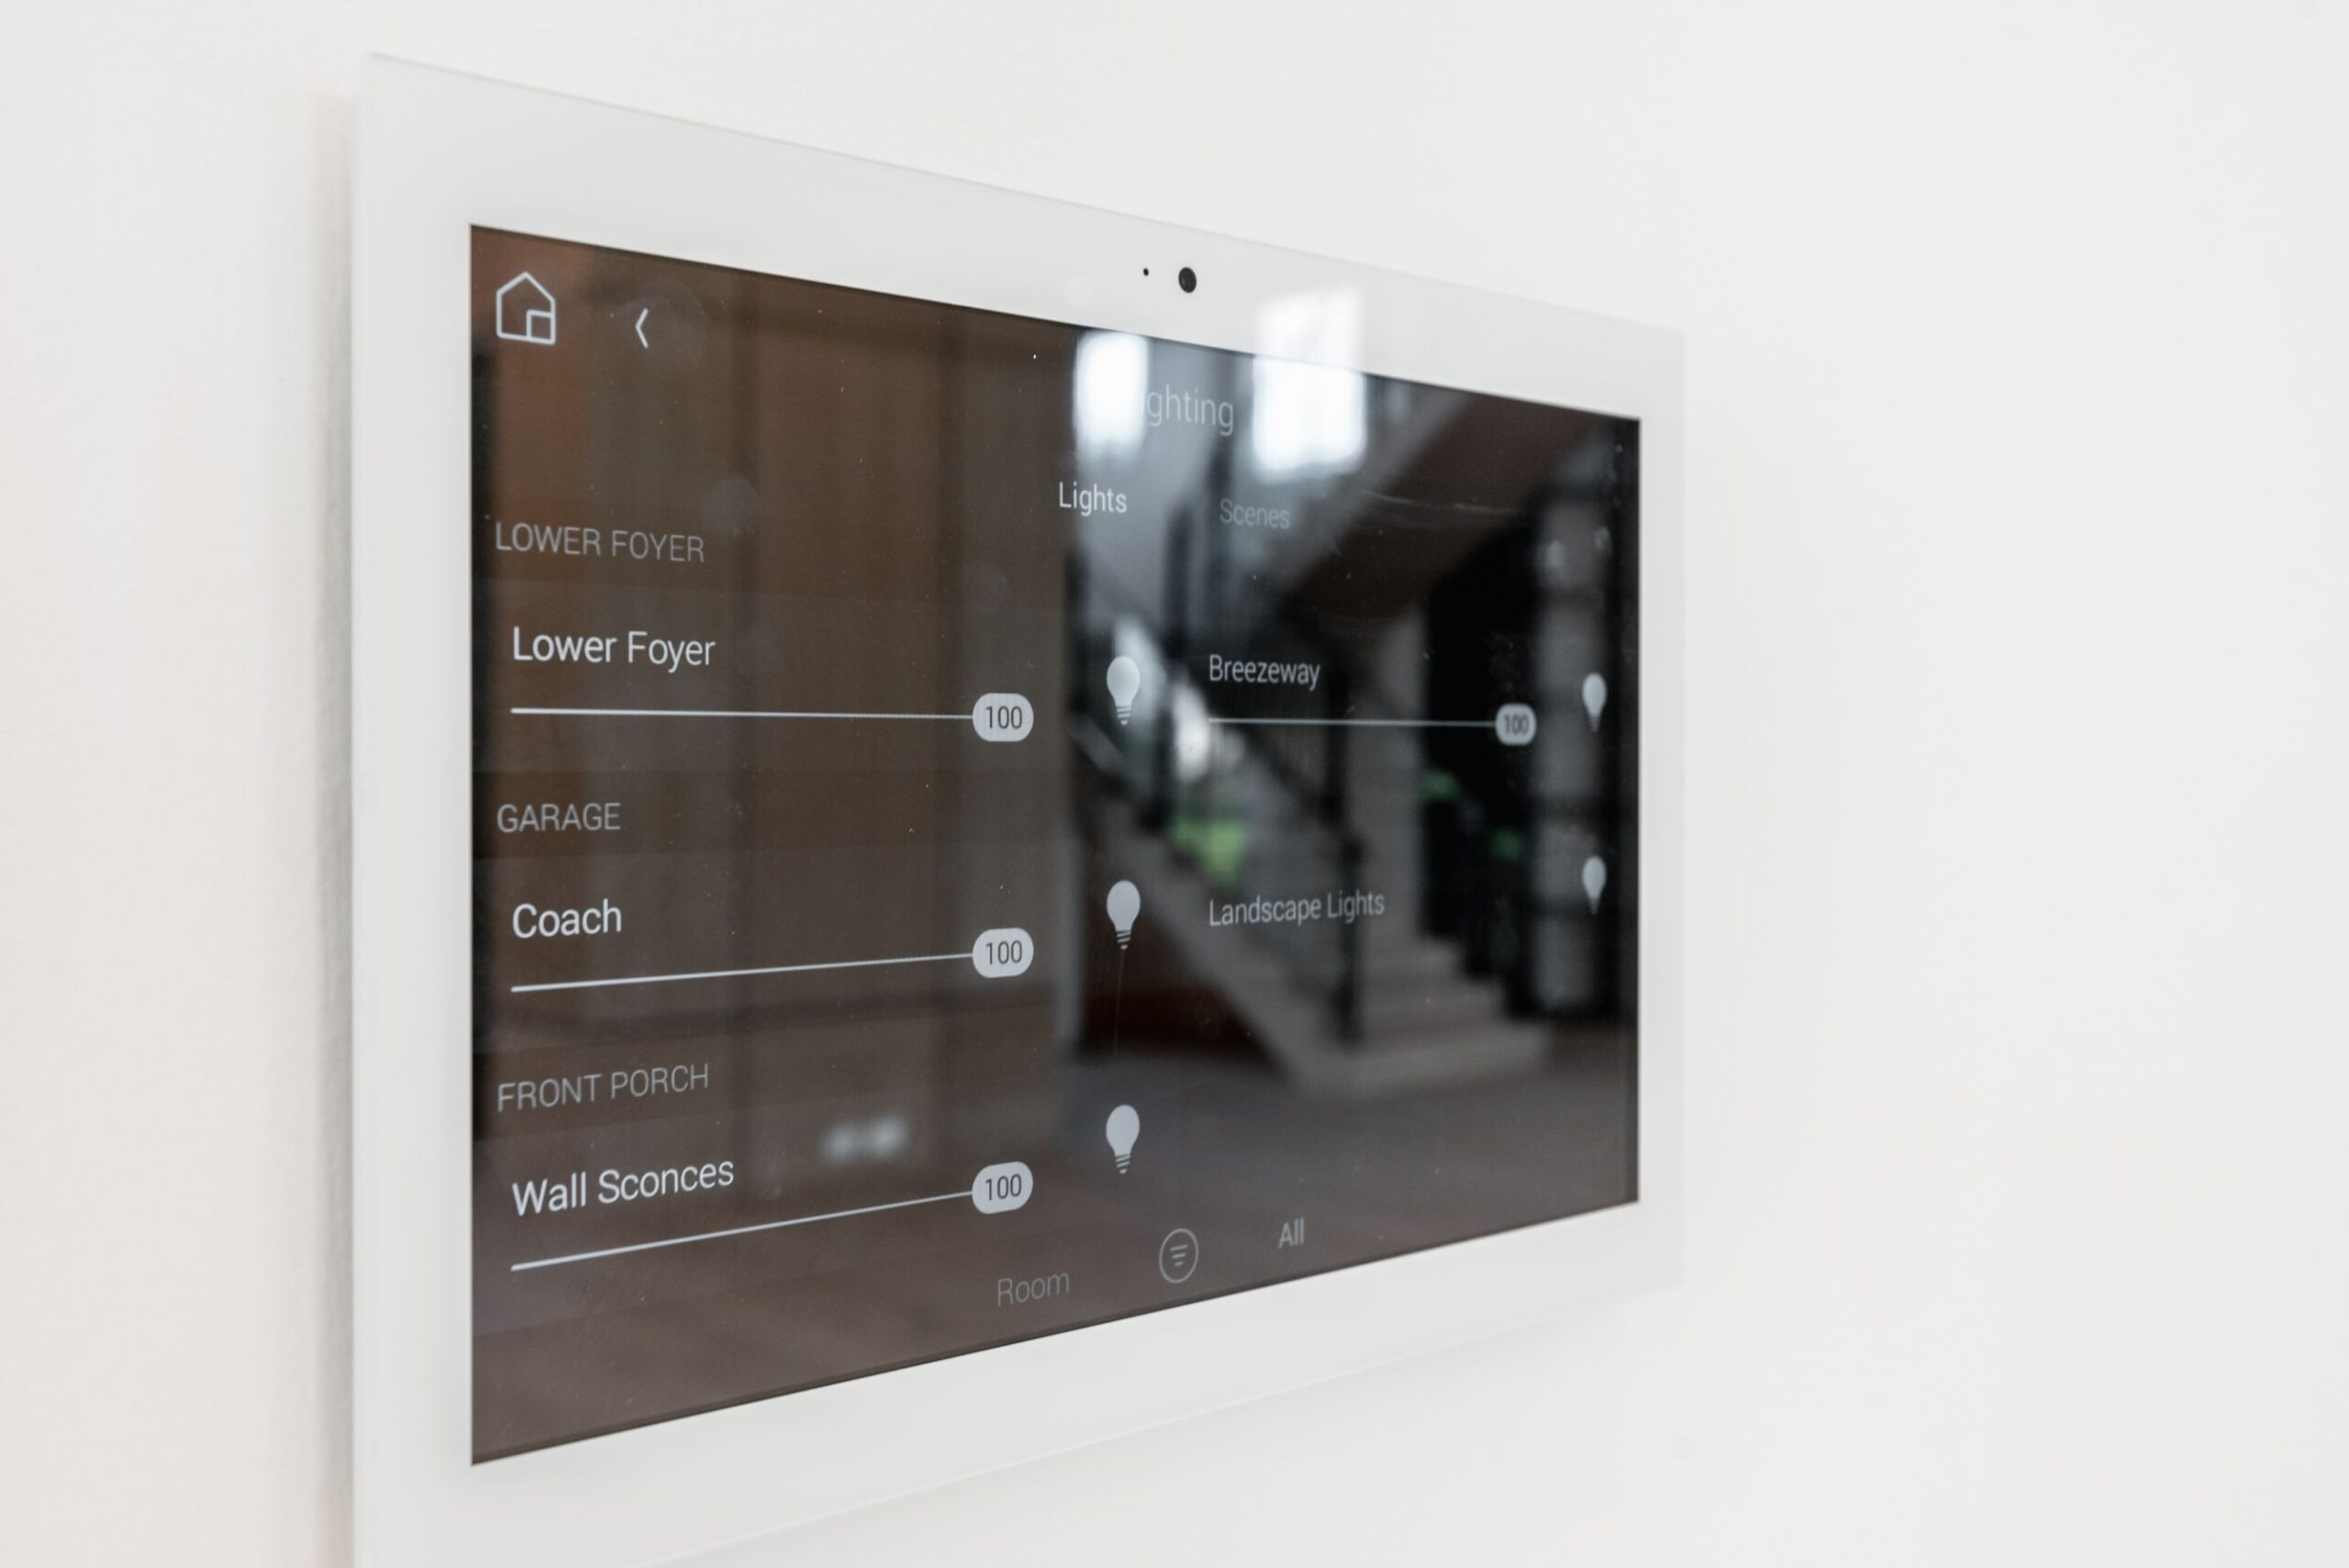 Home Automation Touchscreen